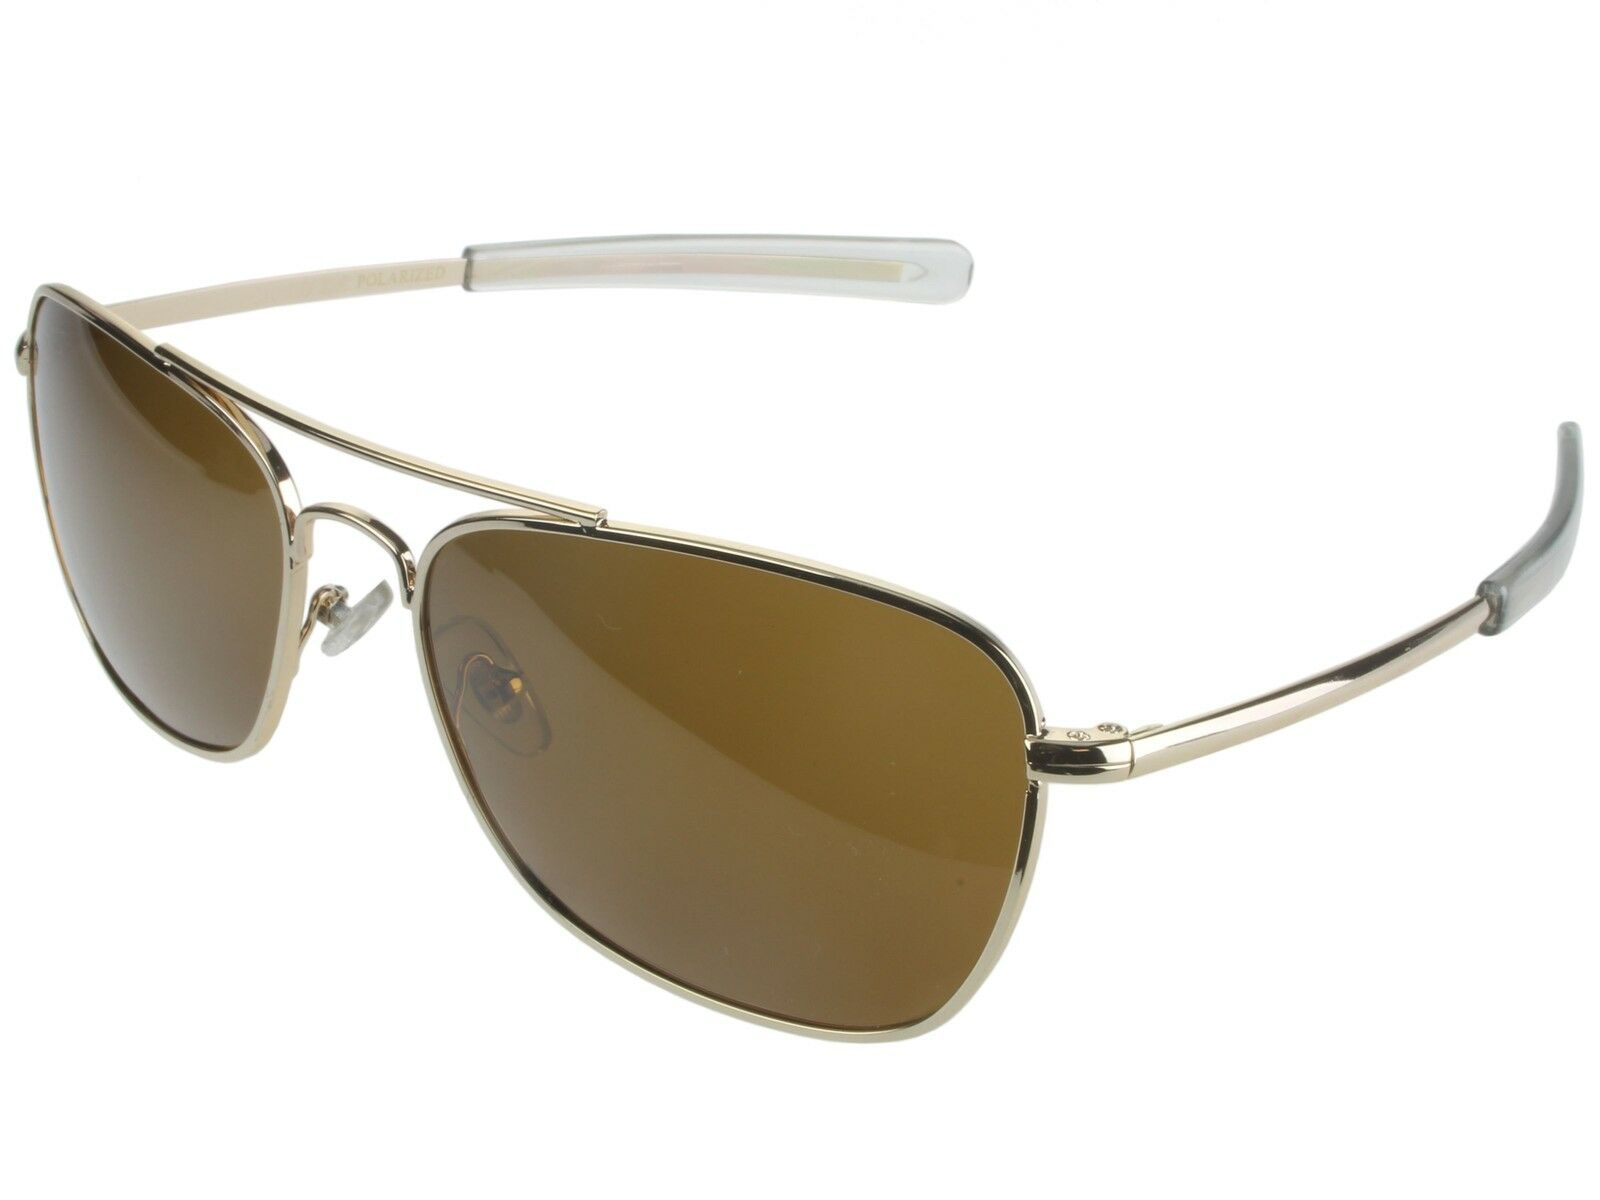 Pilot Details Square About Gold Temple Aviator Bayonet Polarized Sunglasses 8PwknO0